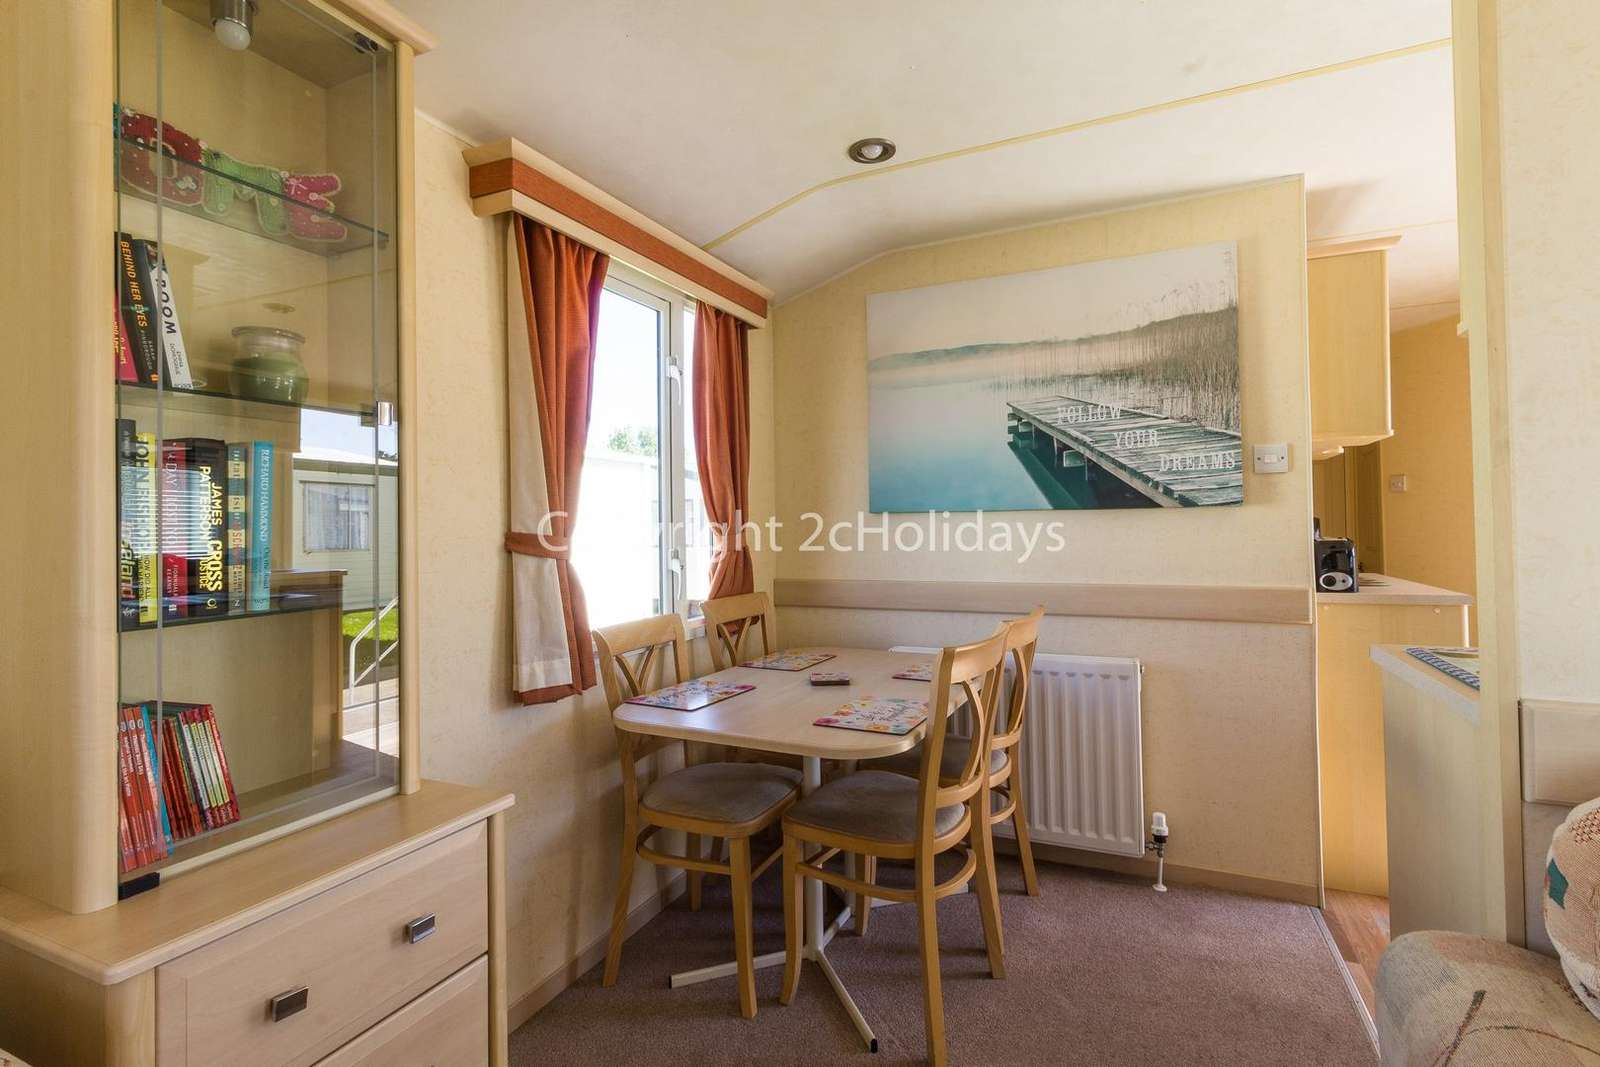 Great place to dine with your families or friends in this self-catering accommodation